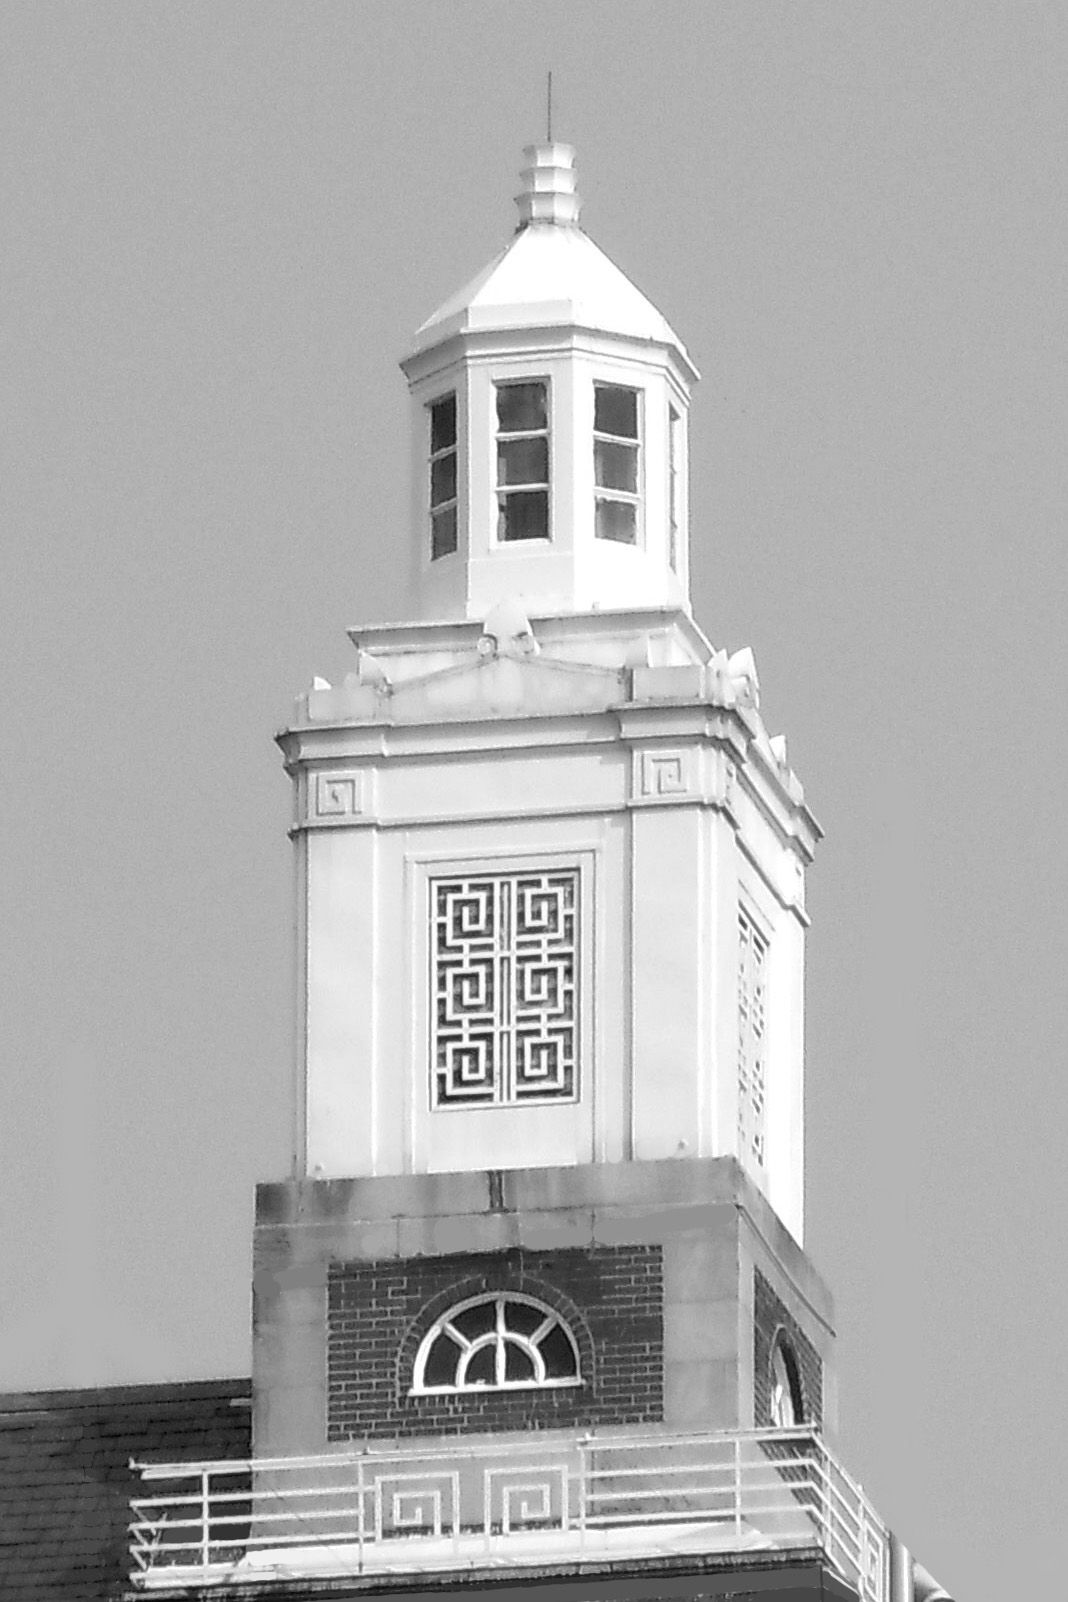 UAB's Beacon of Hope was placed in 1941, when the then